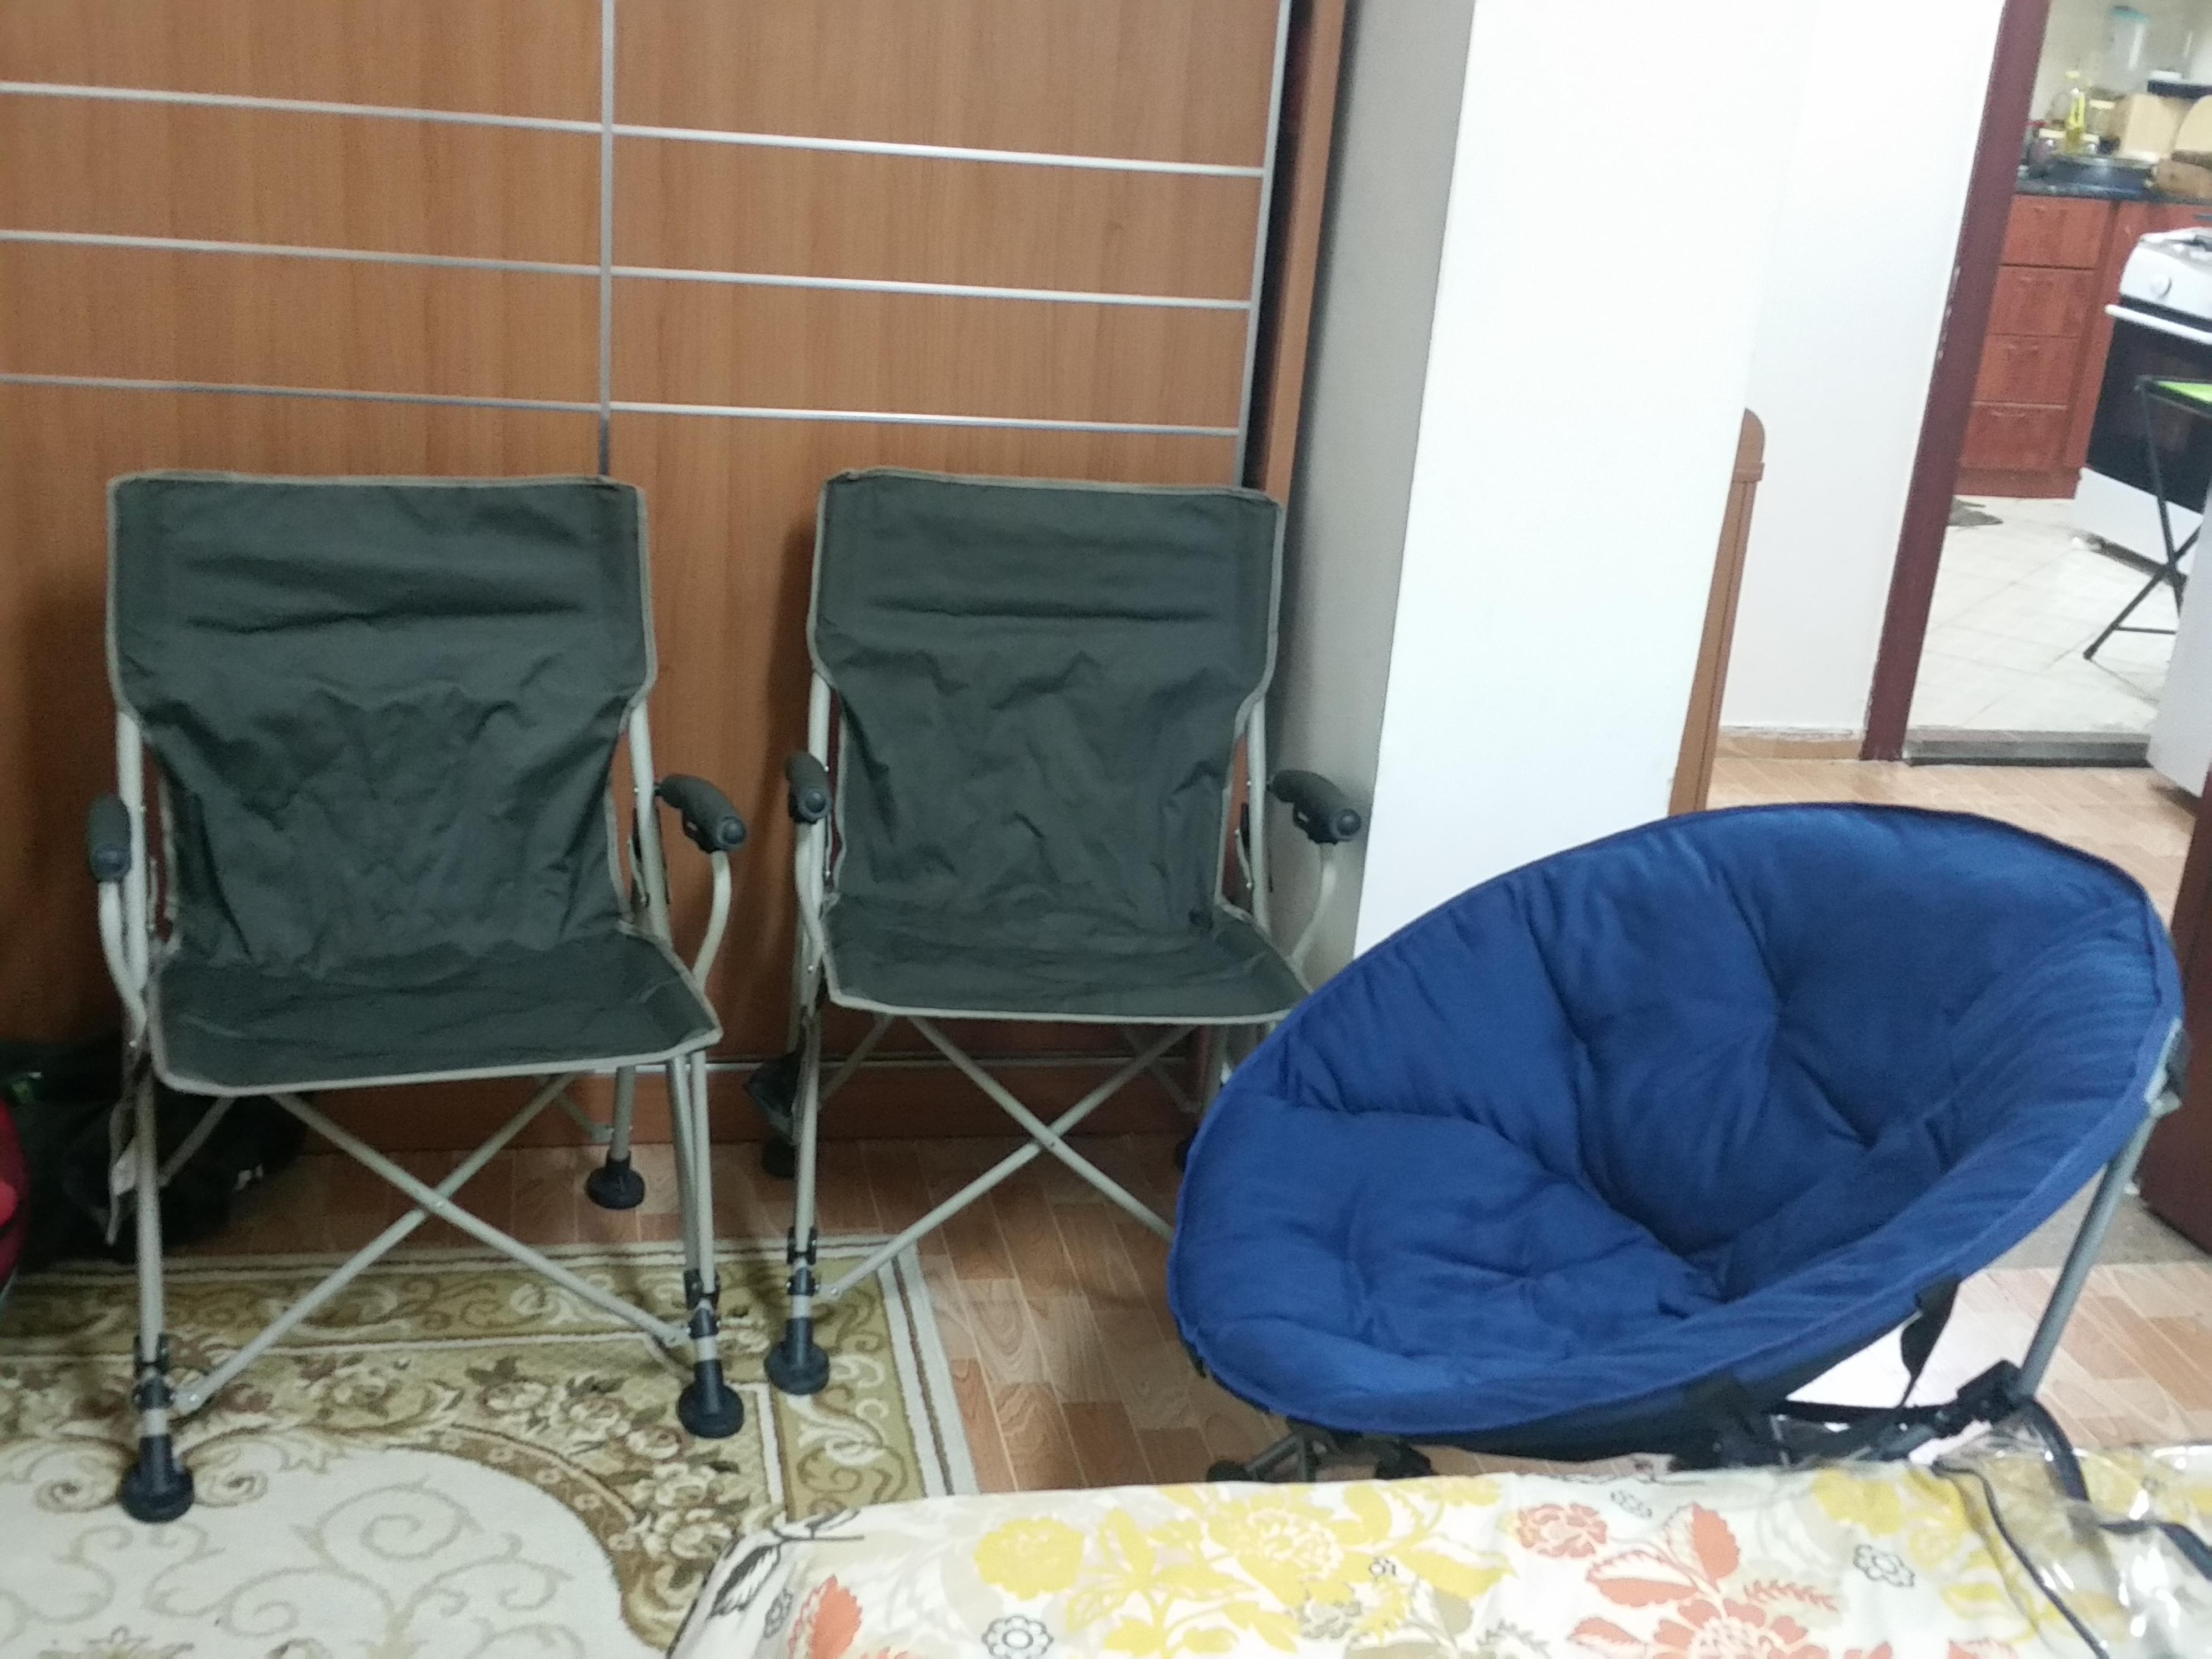 folding chair qatar oversized cushion covers 3 outdoor chairs new living title